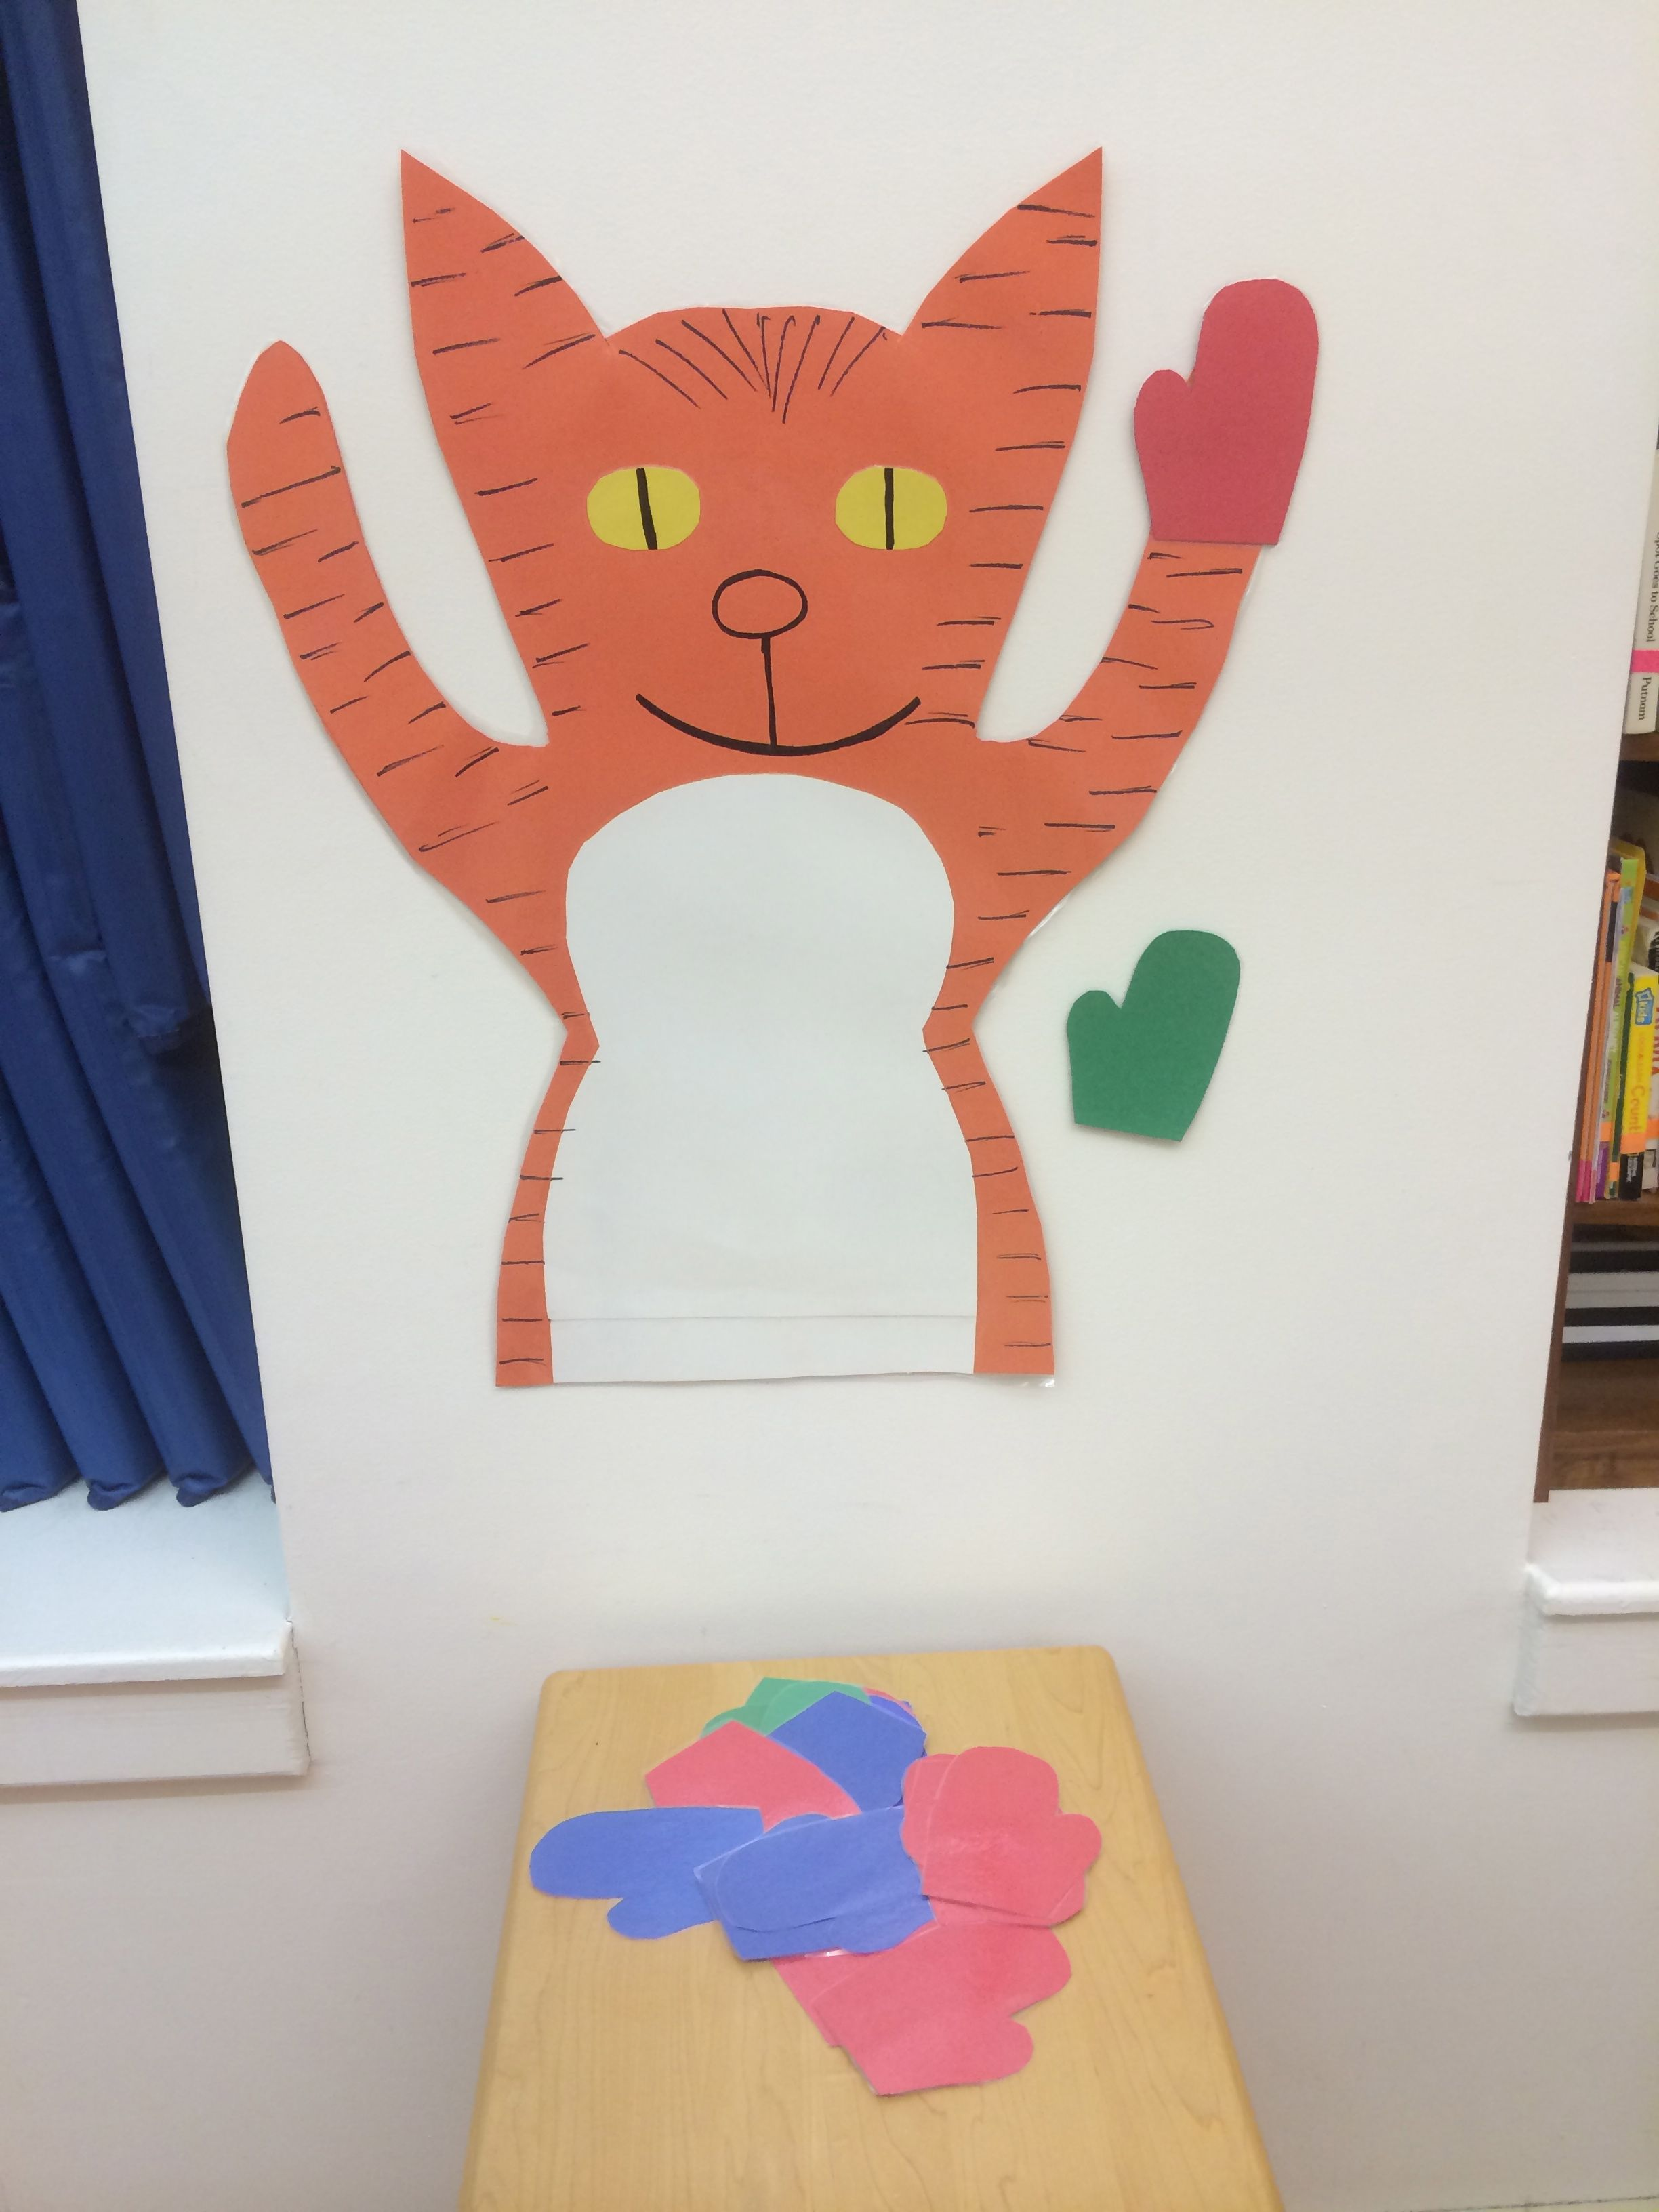 Pin The Mitten On The Kitten A Game I Created From The